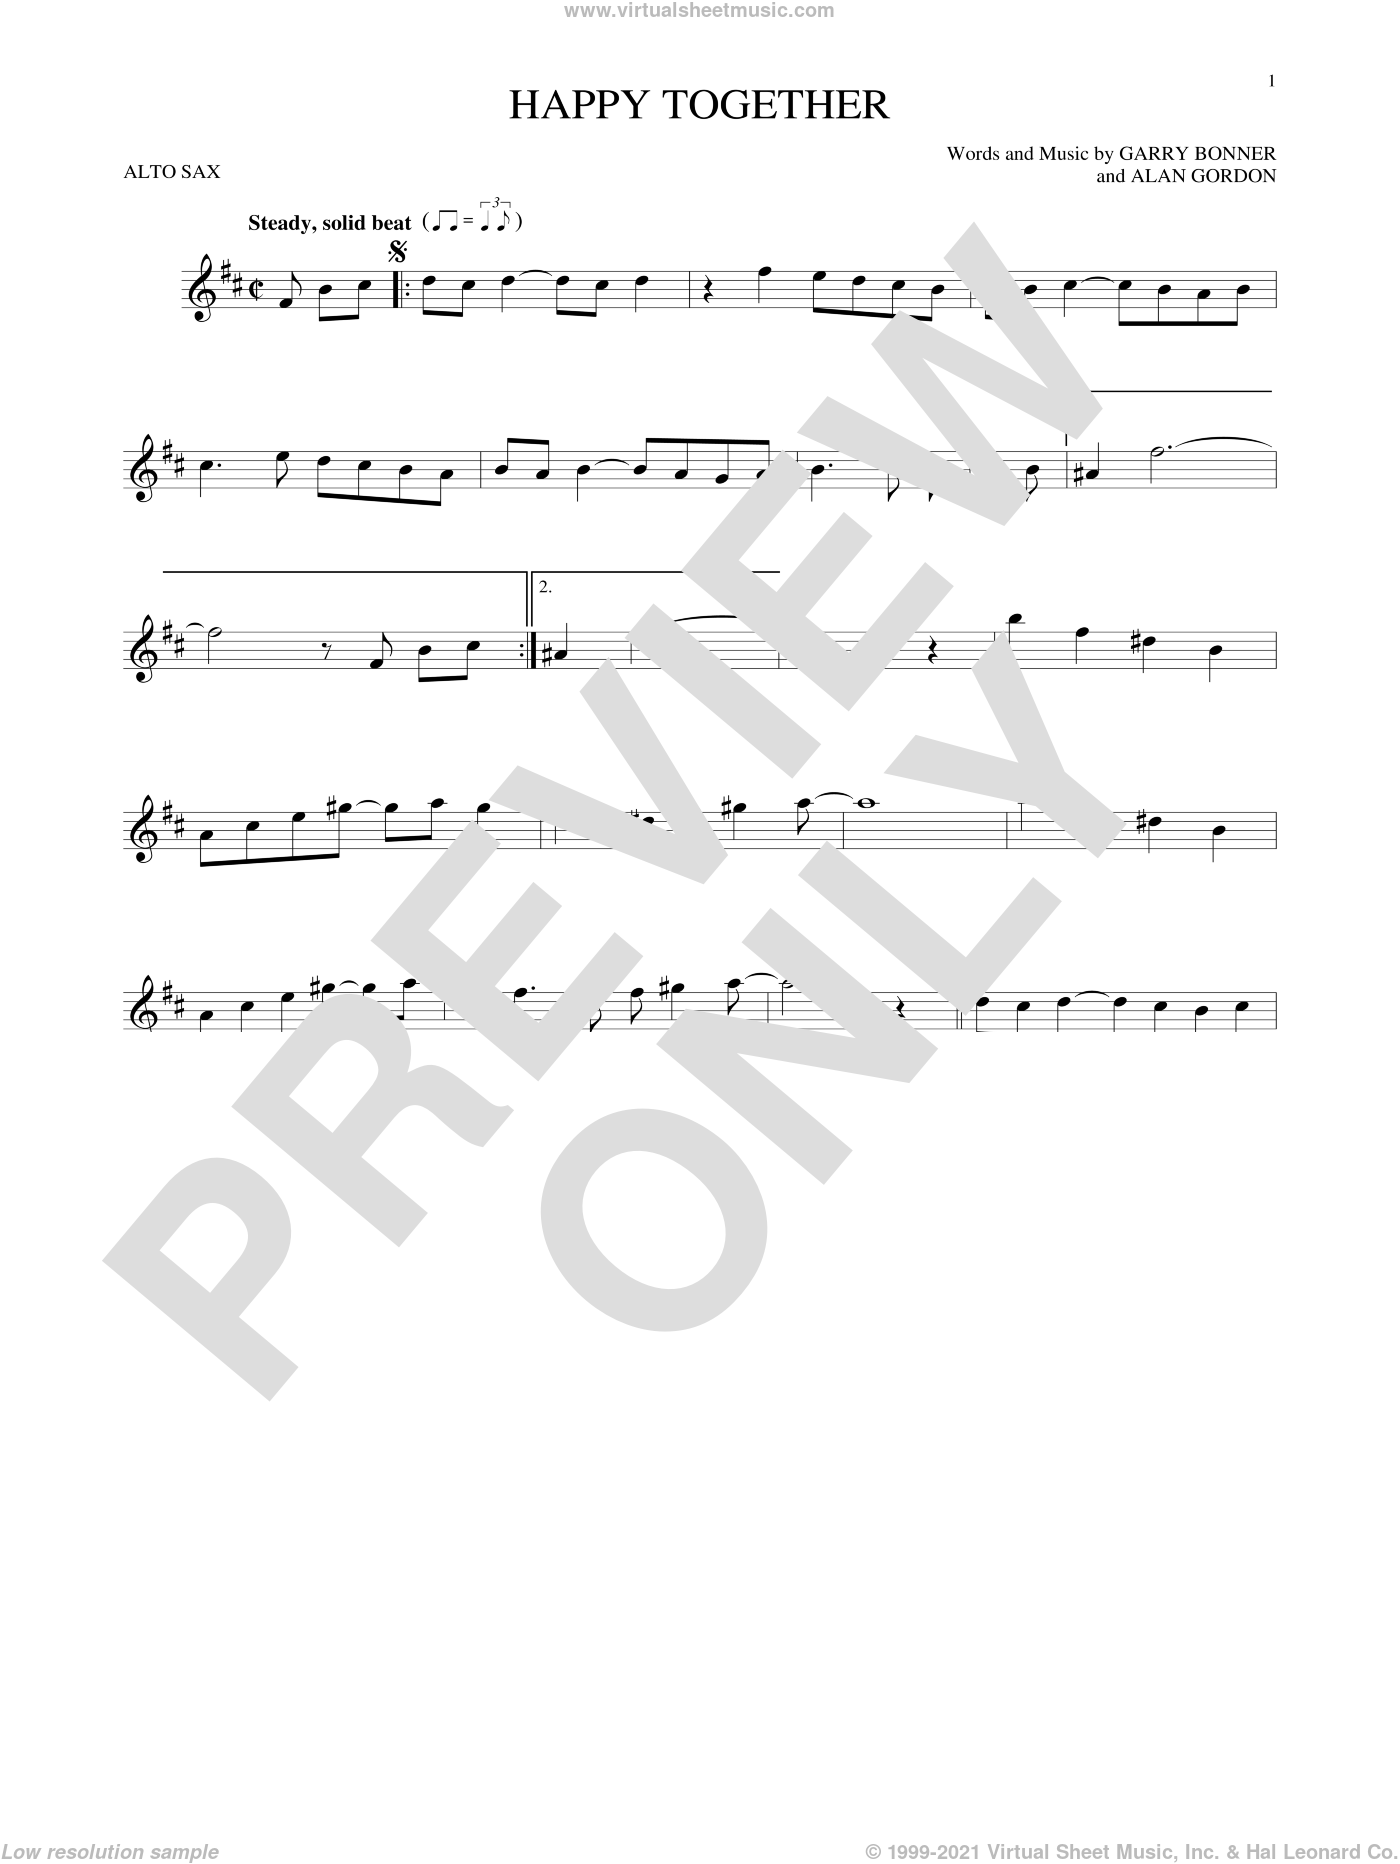 Happy Together sheet music for alto saxophone solo by The Turtles, Alan Gordon and Garry Bonner, intermediate